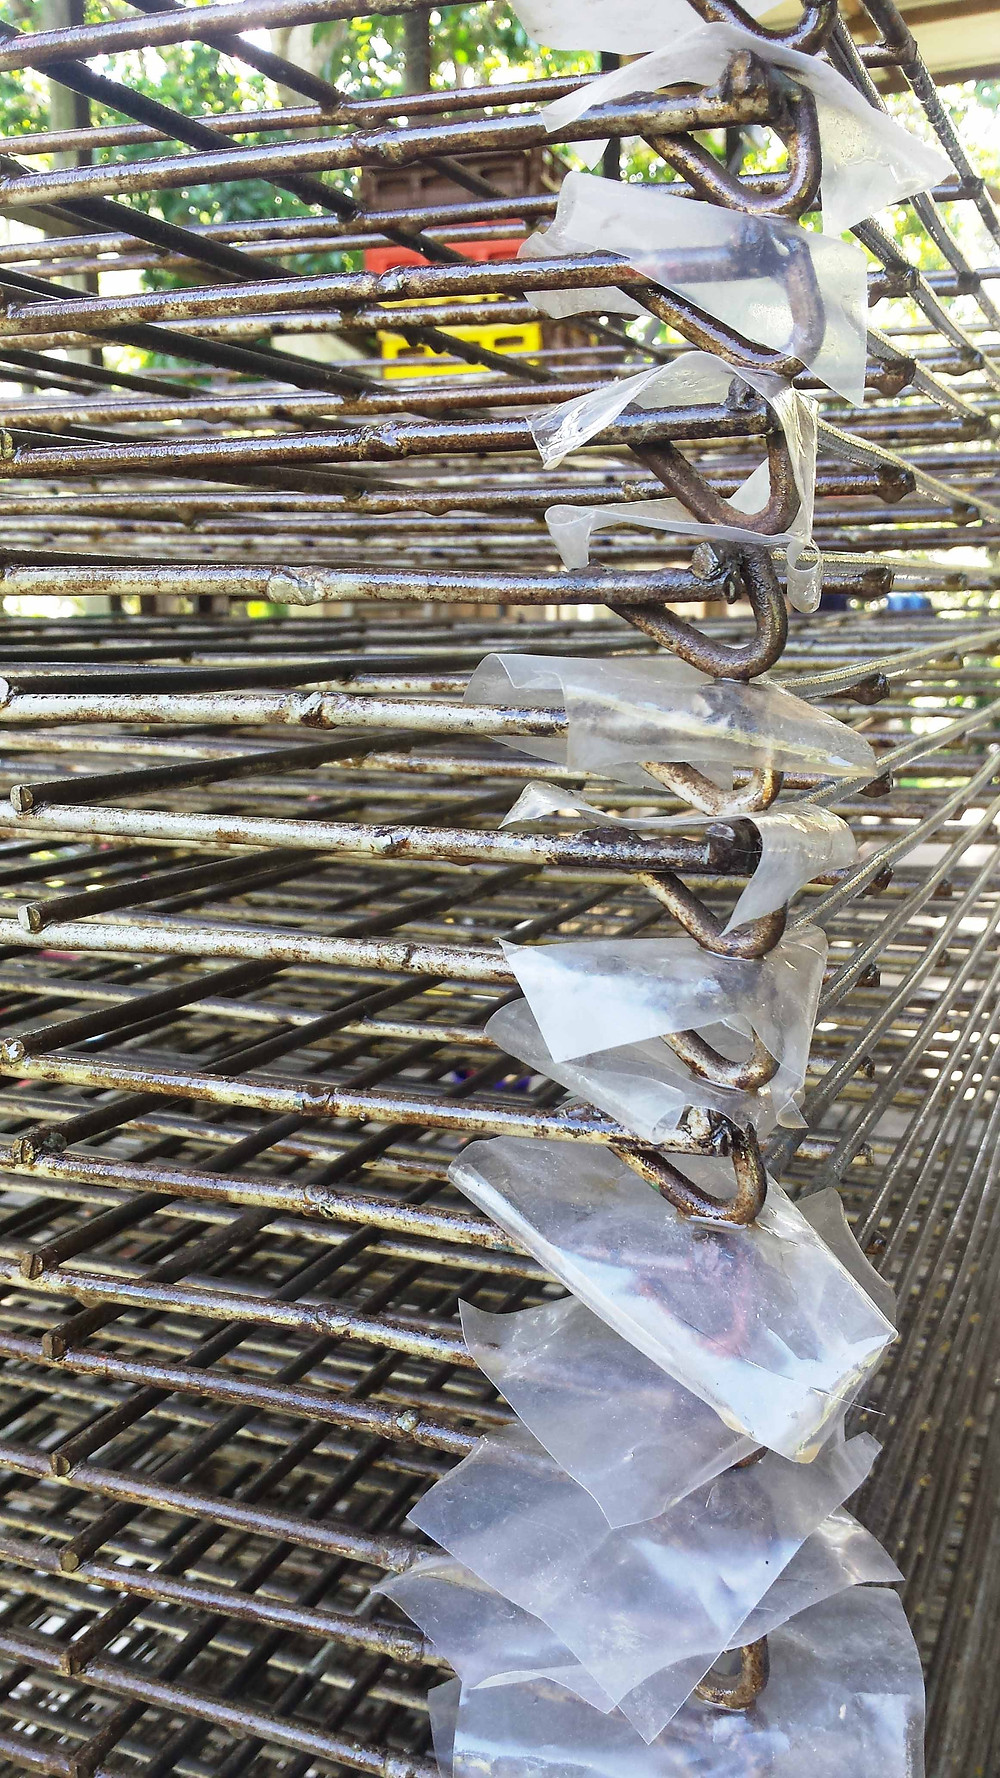 drying rack working bee 4.jpg